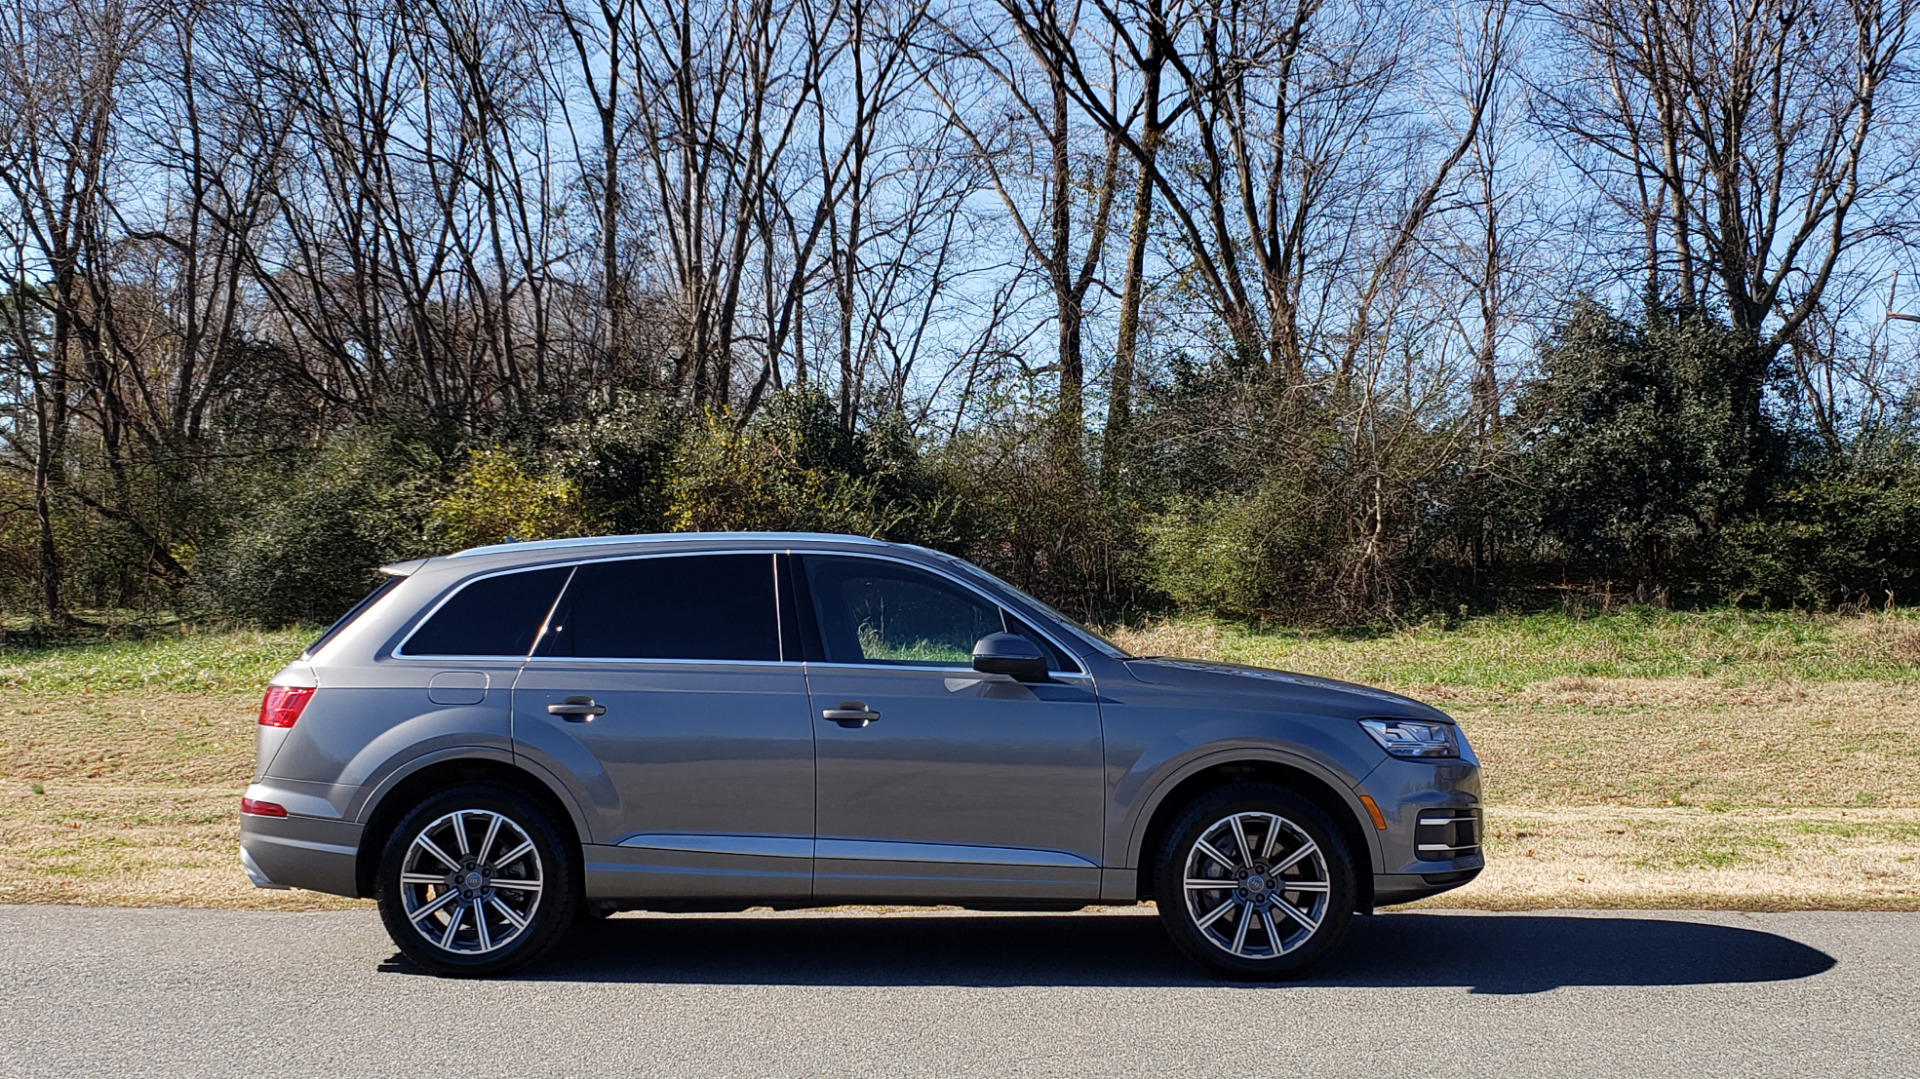 Used 2017 Audi Q7 PREMIUM PLUS / 2.0T TIPTRONIC / NAV / PANO-ROOF / 3-ROW / REARVIEW for sale $33,999 at Formula Imports in Charlotte NC 28227 4